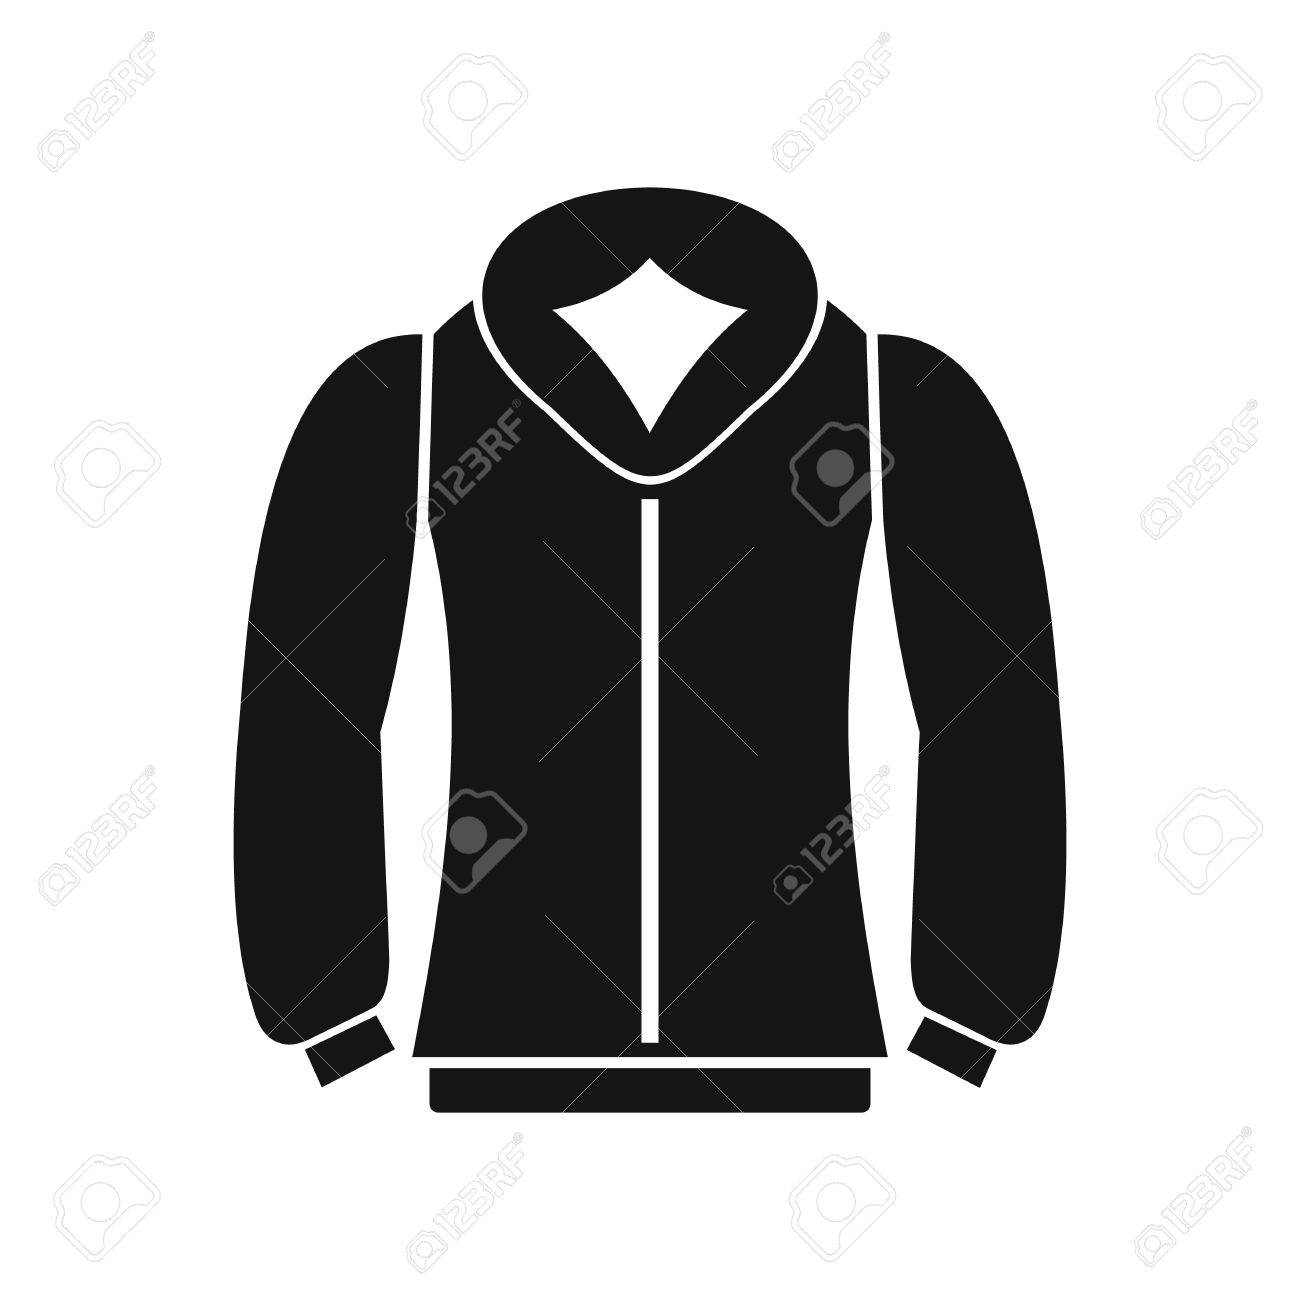 86e55999994d Sweatshirt icon in simple style on a white background vector illustration  Stock Vector - 63183308